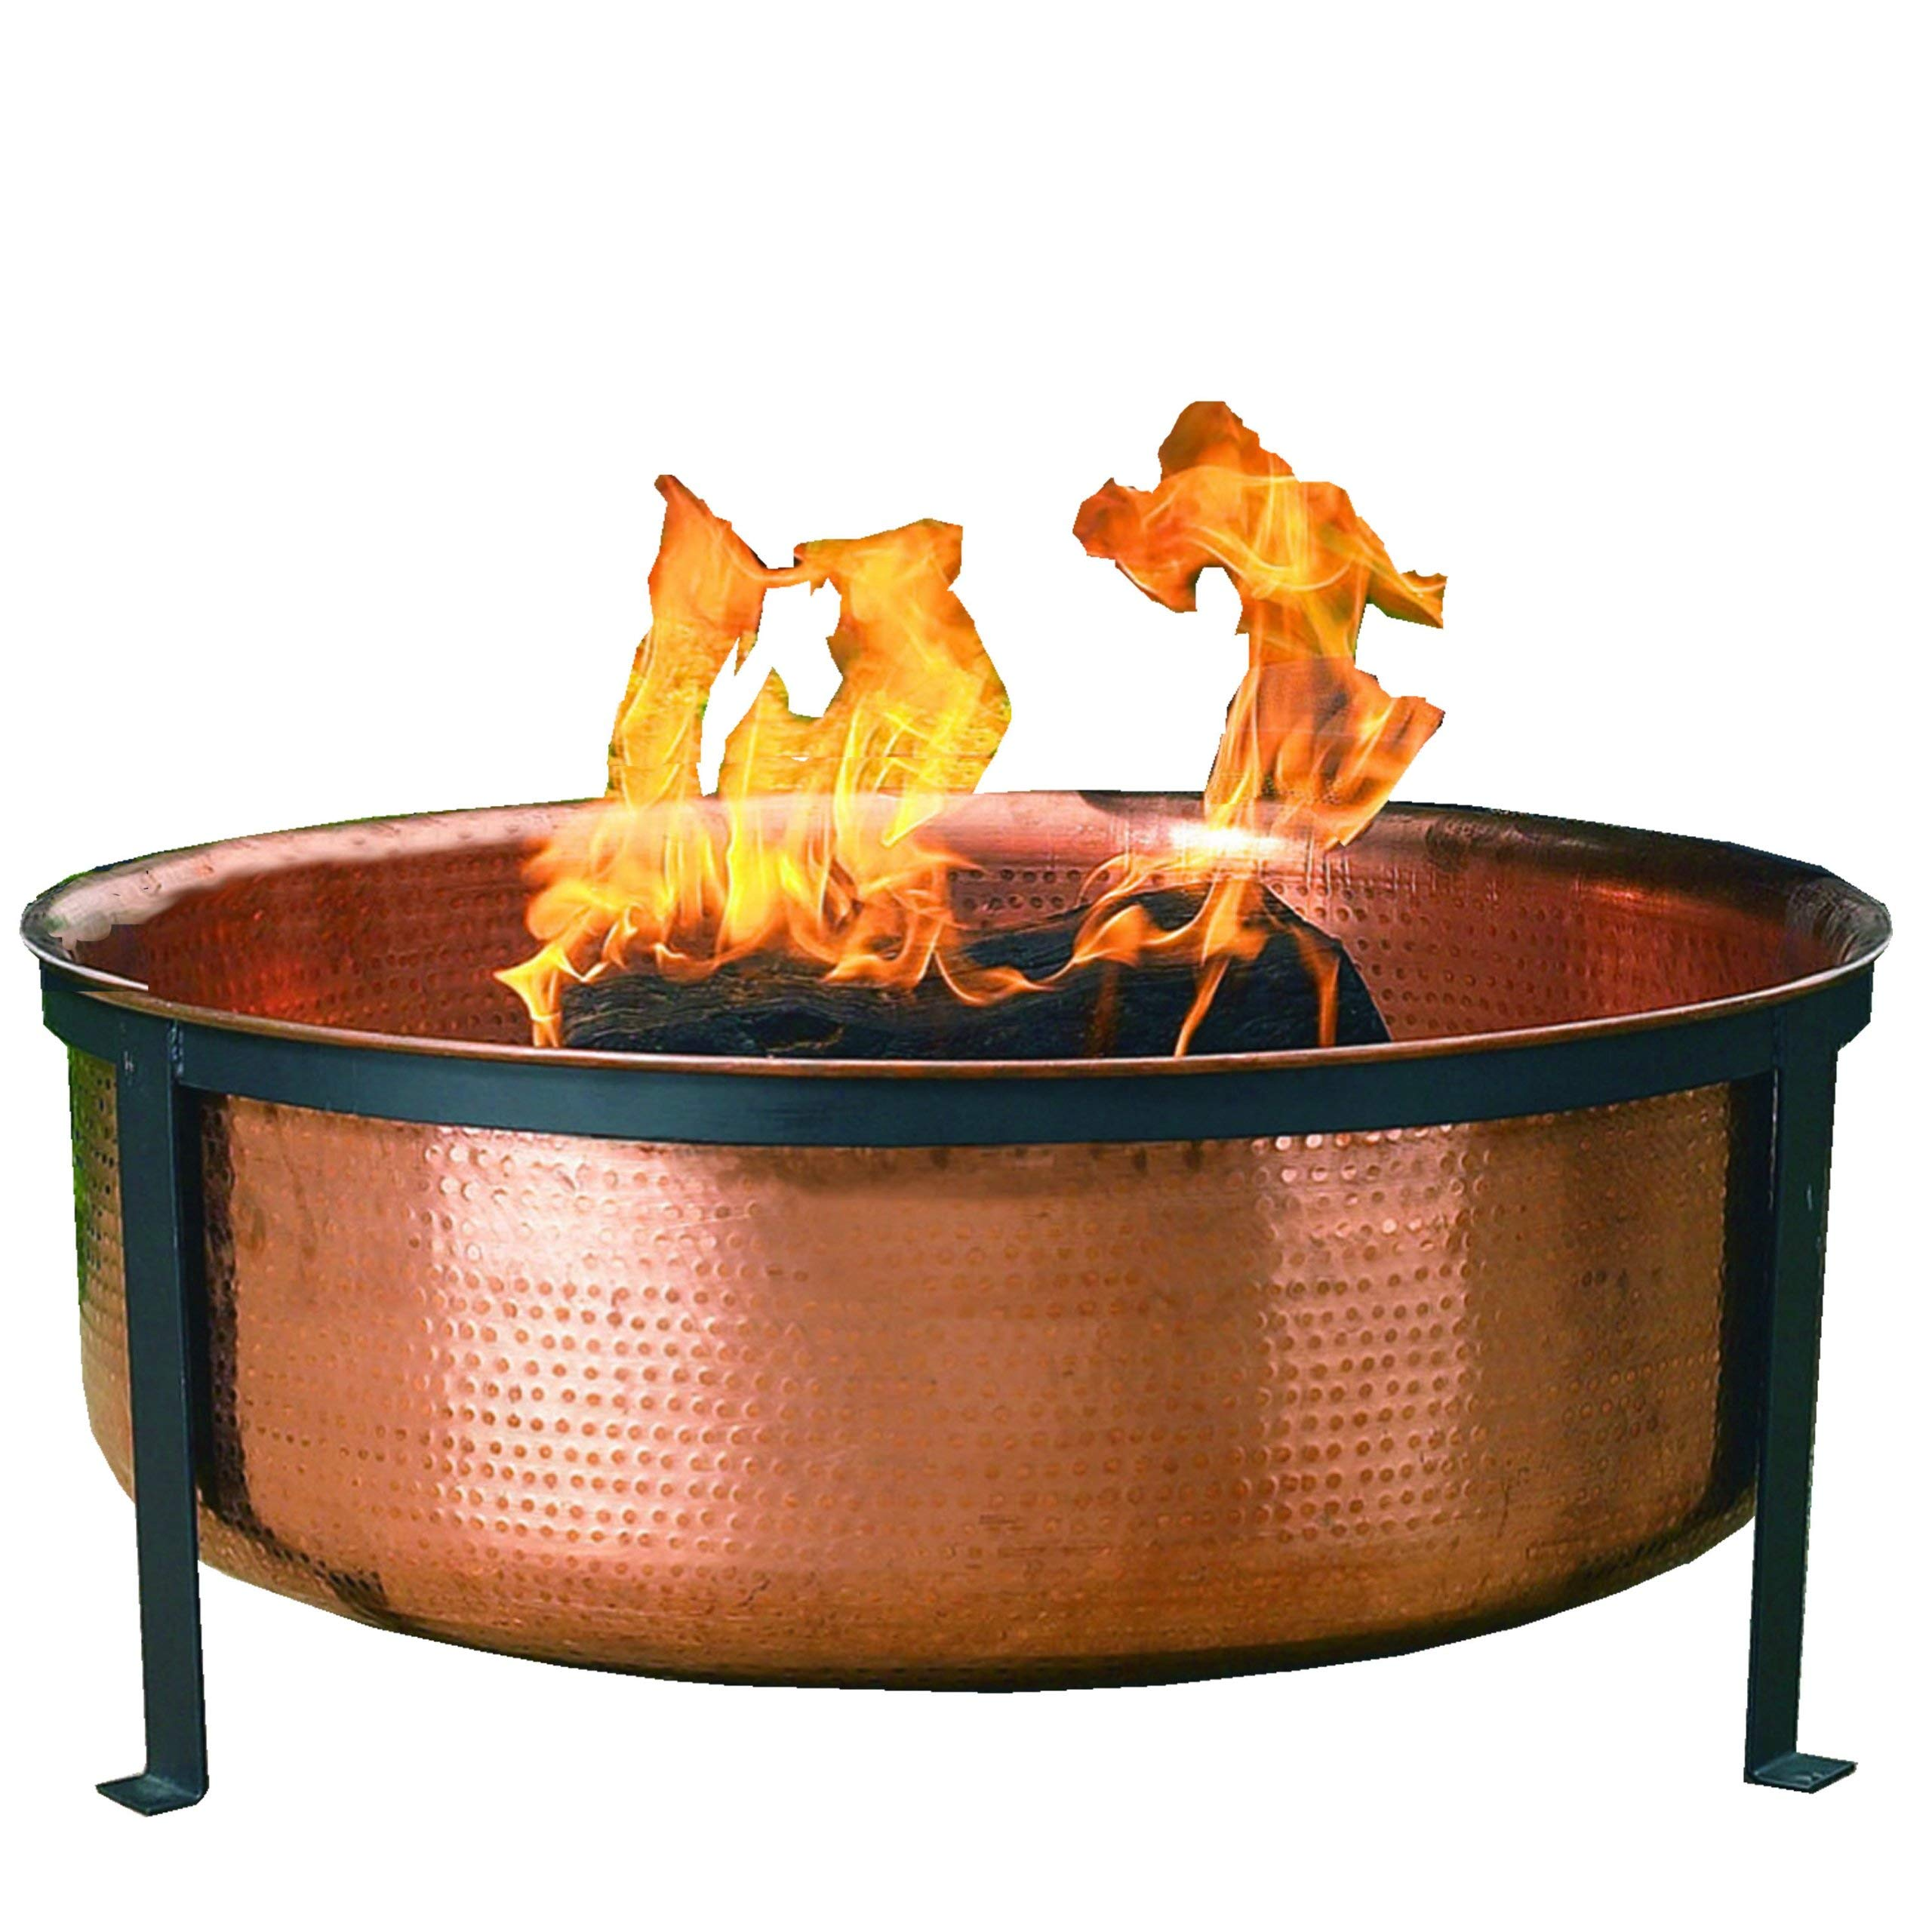 CobraCo SH101 Hand Hammered 100% Copper Fire Pit with Screen and Cover (Renewed) by CobraCo